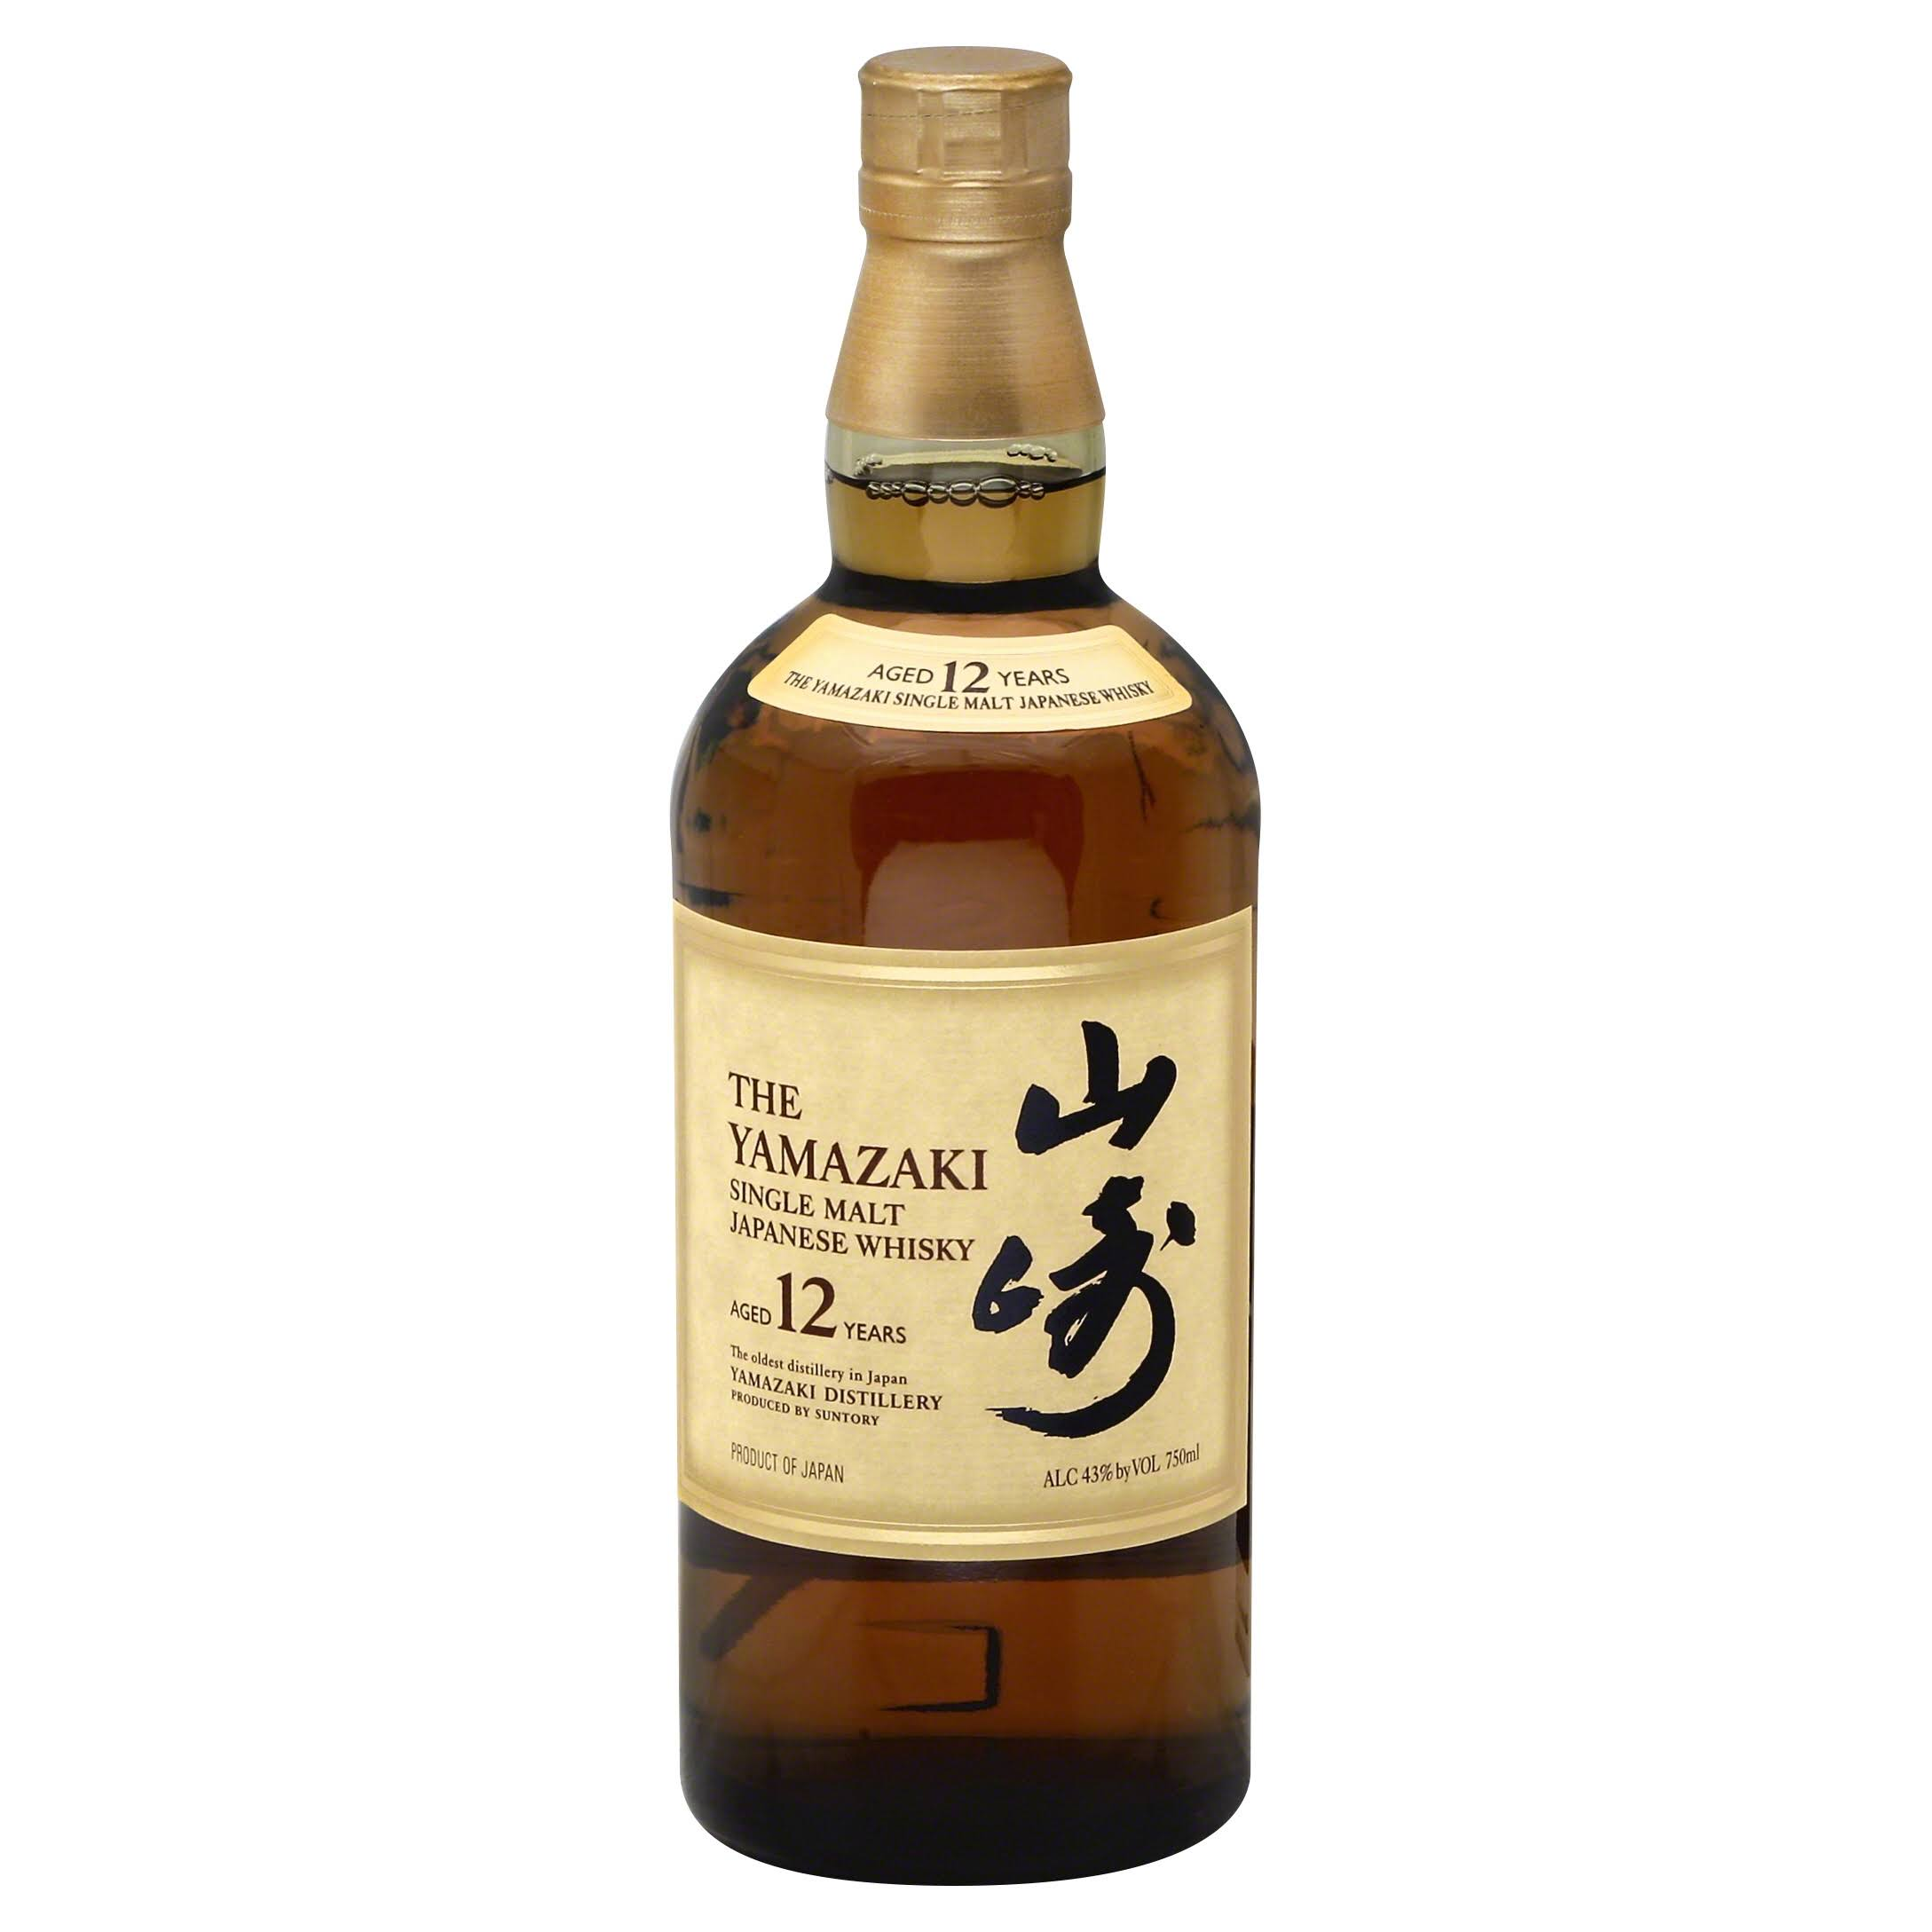 The Yamazaki 12 Year Single Malt Whisky - 750 ml bottle